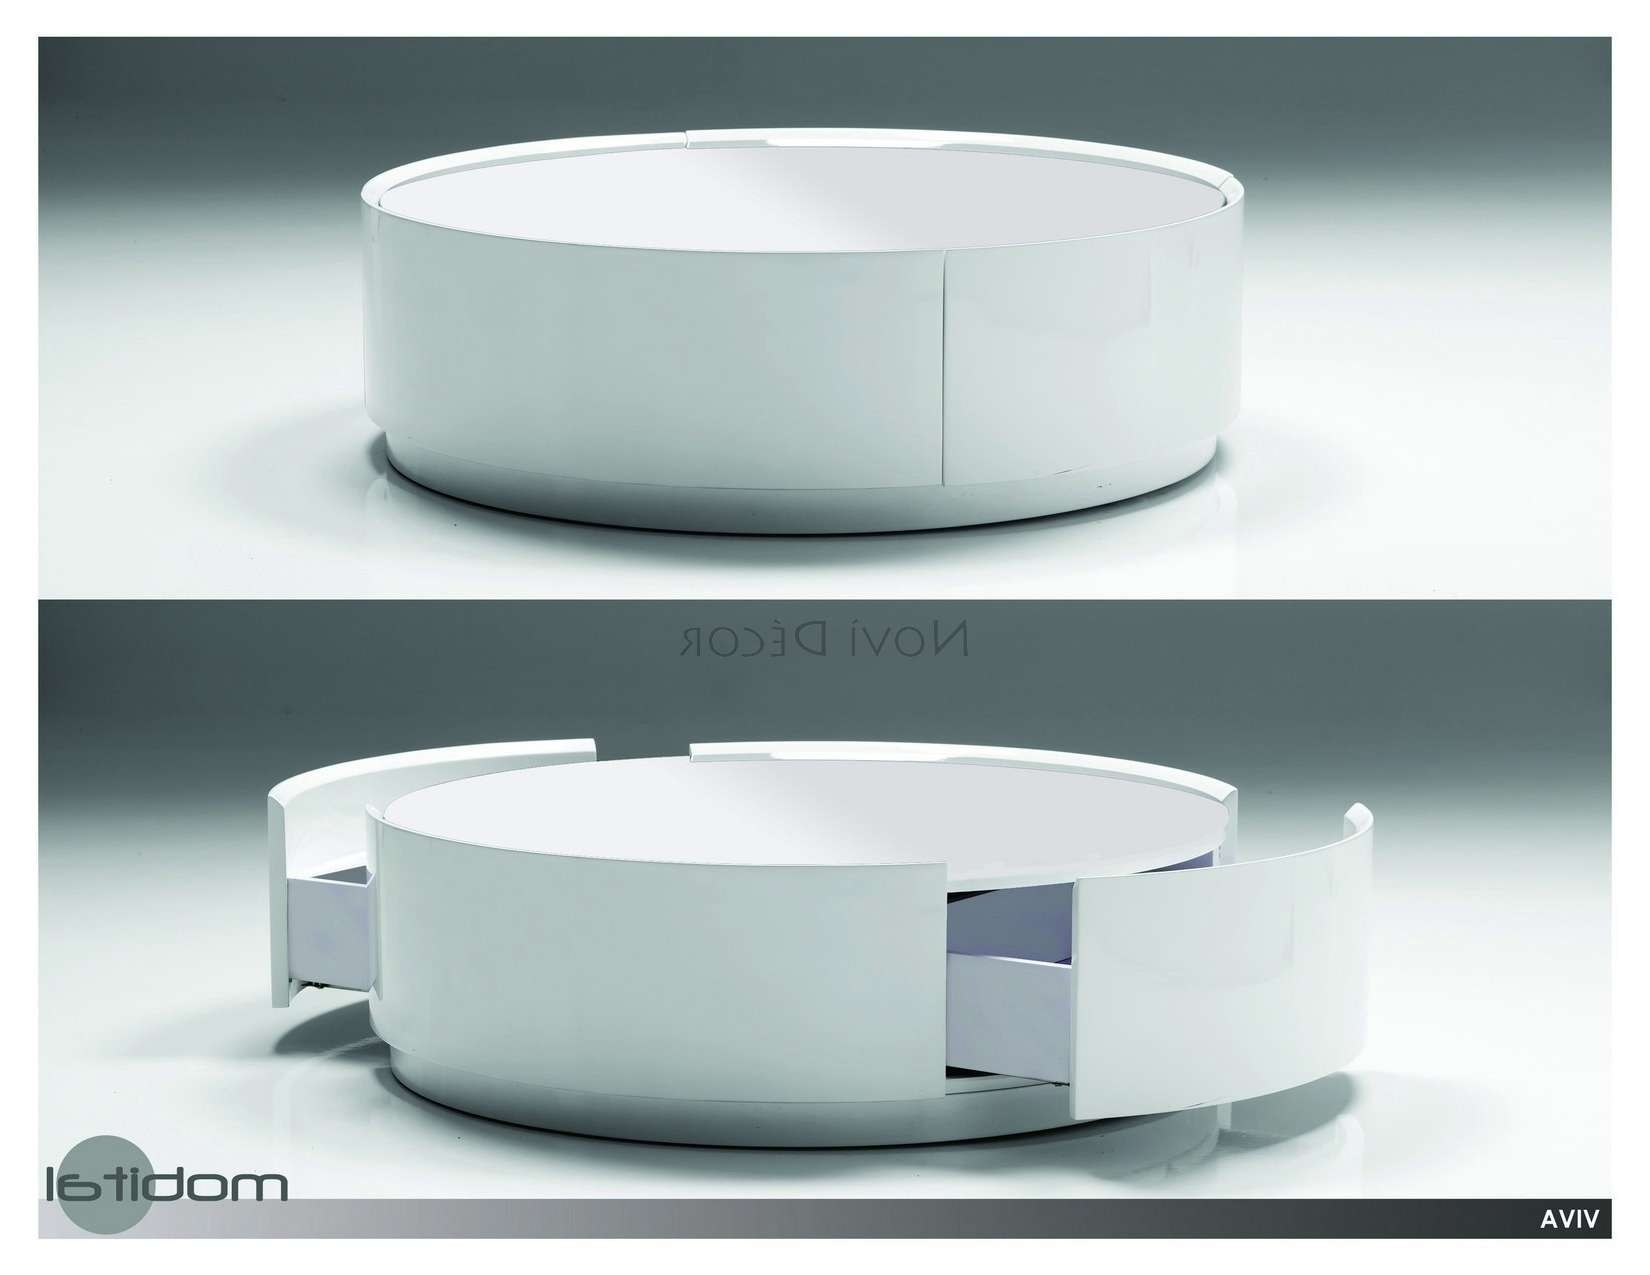 Amazing Round Coffee Tables With Storage Pics Ideas – Tikspor With Regard To 2017 Round Coffee Table Storages (View 2 of 20)